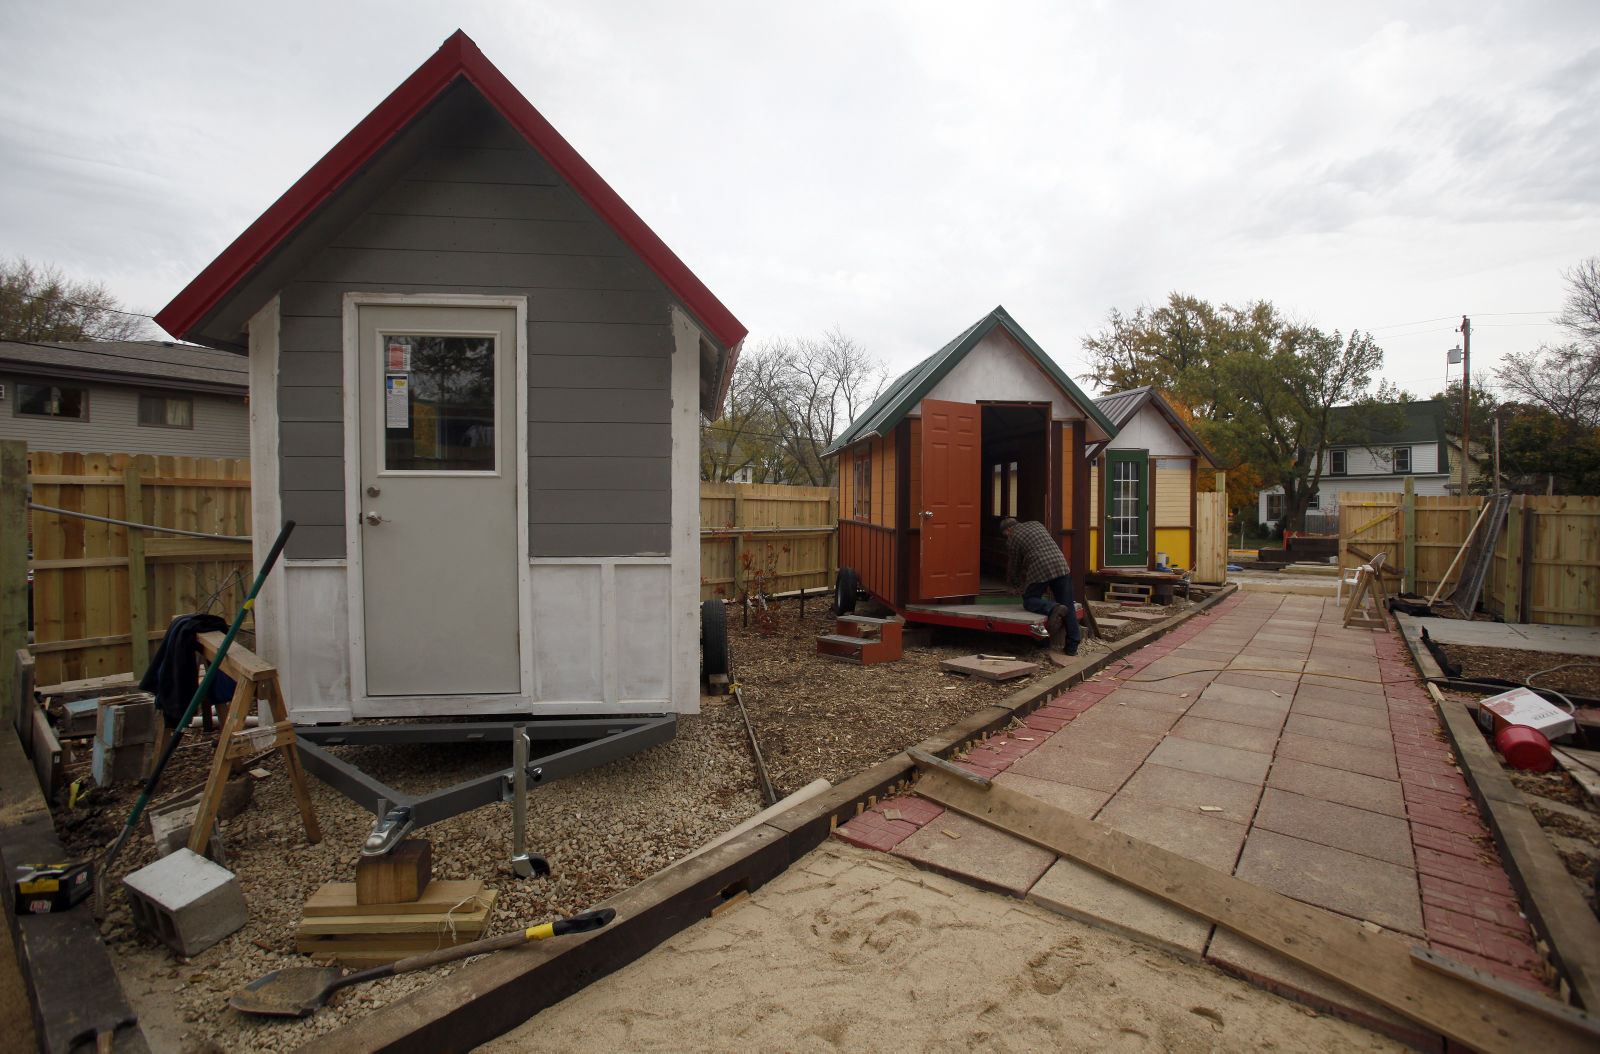 Occupy Madison S Village Of Tiny Houses For The Homeless